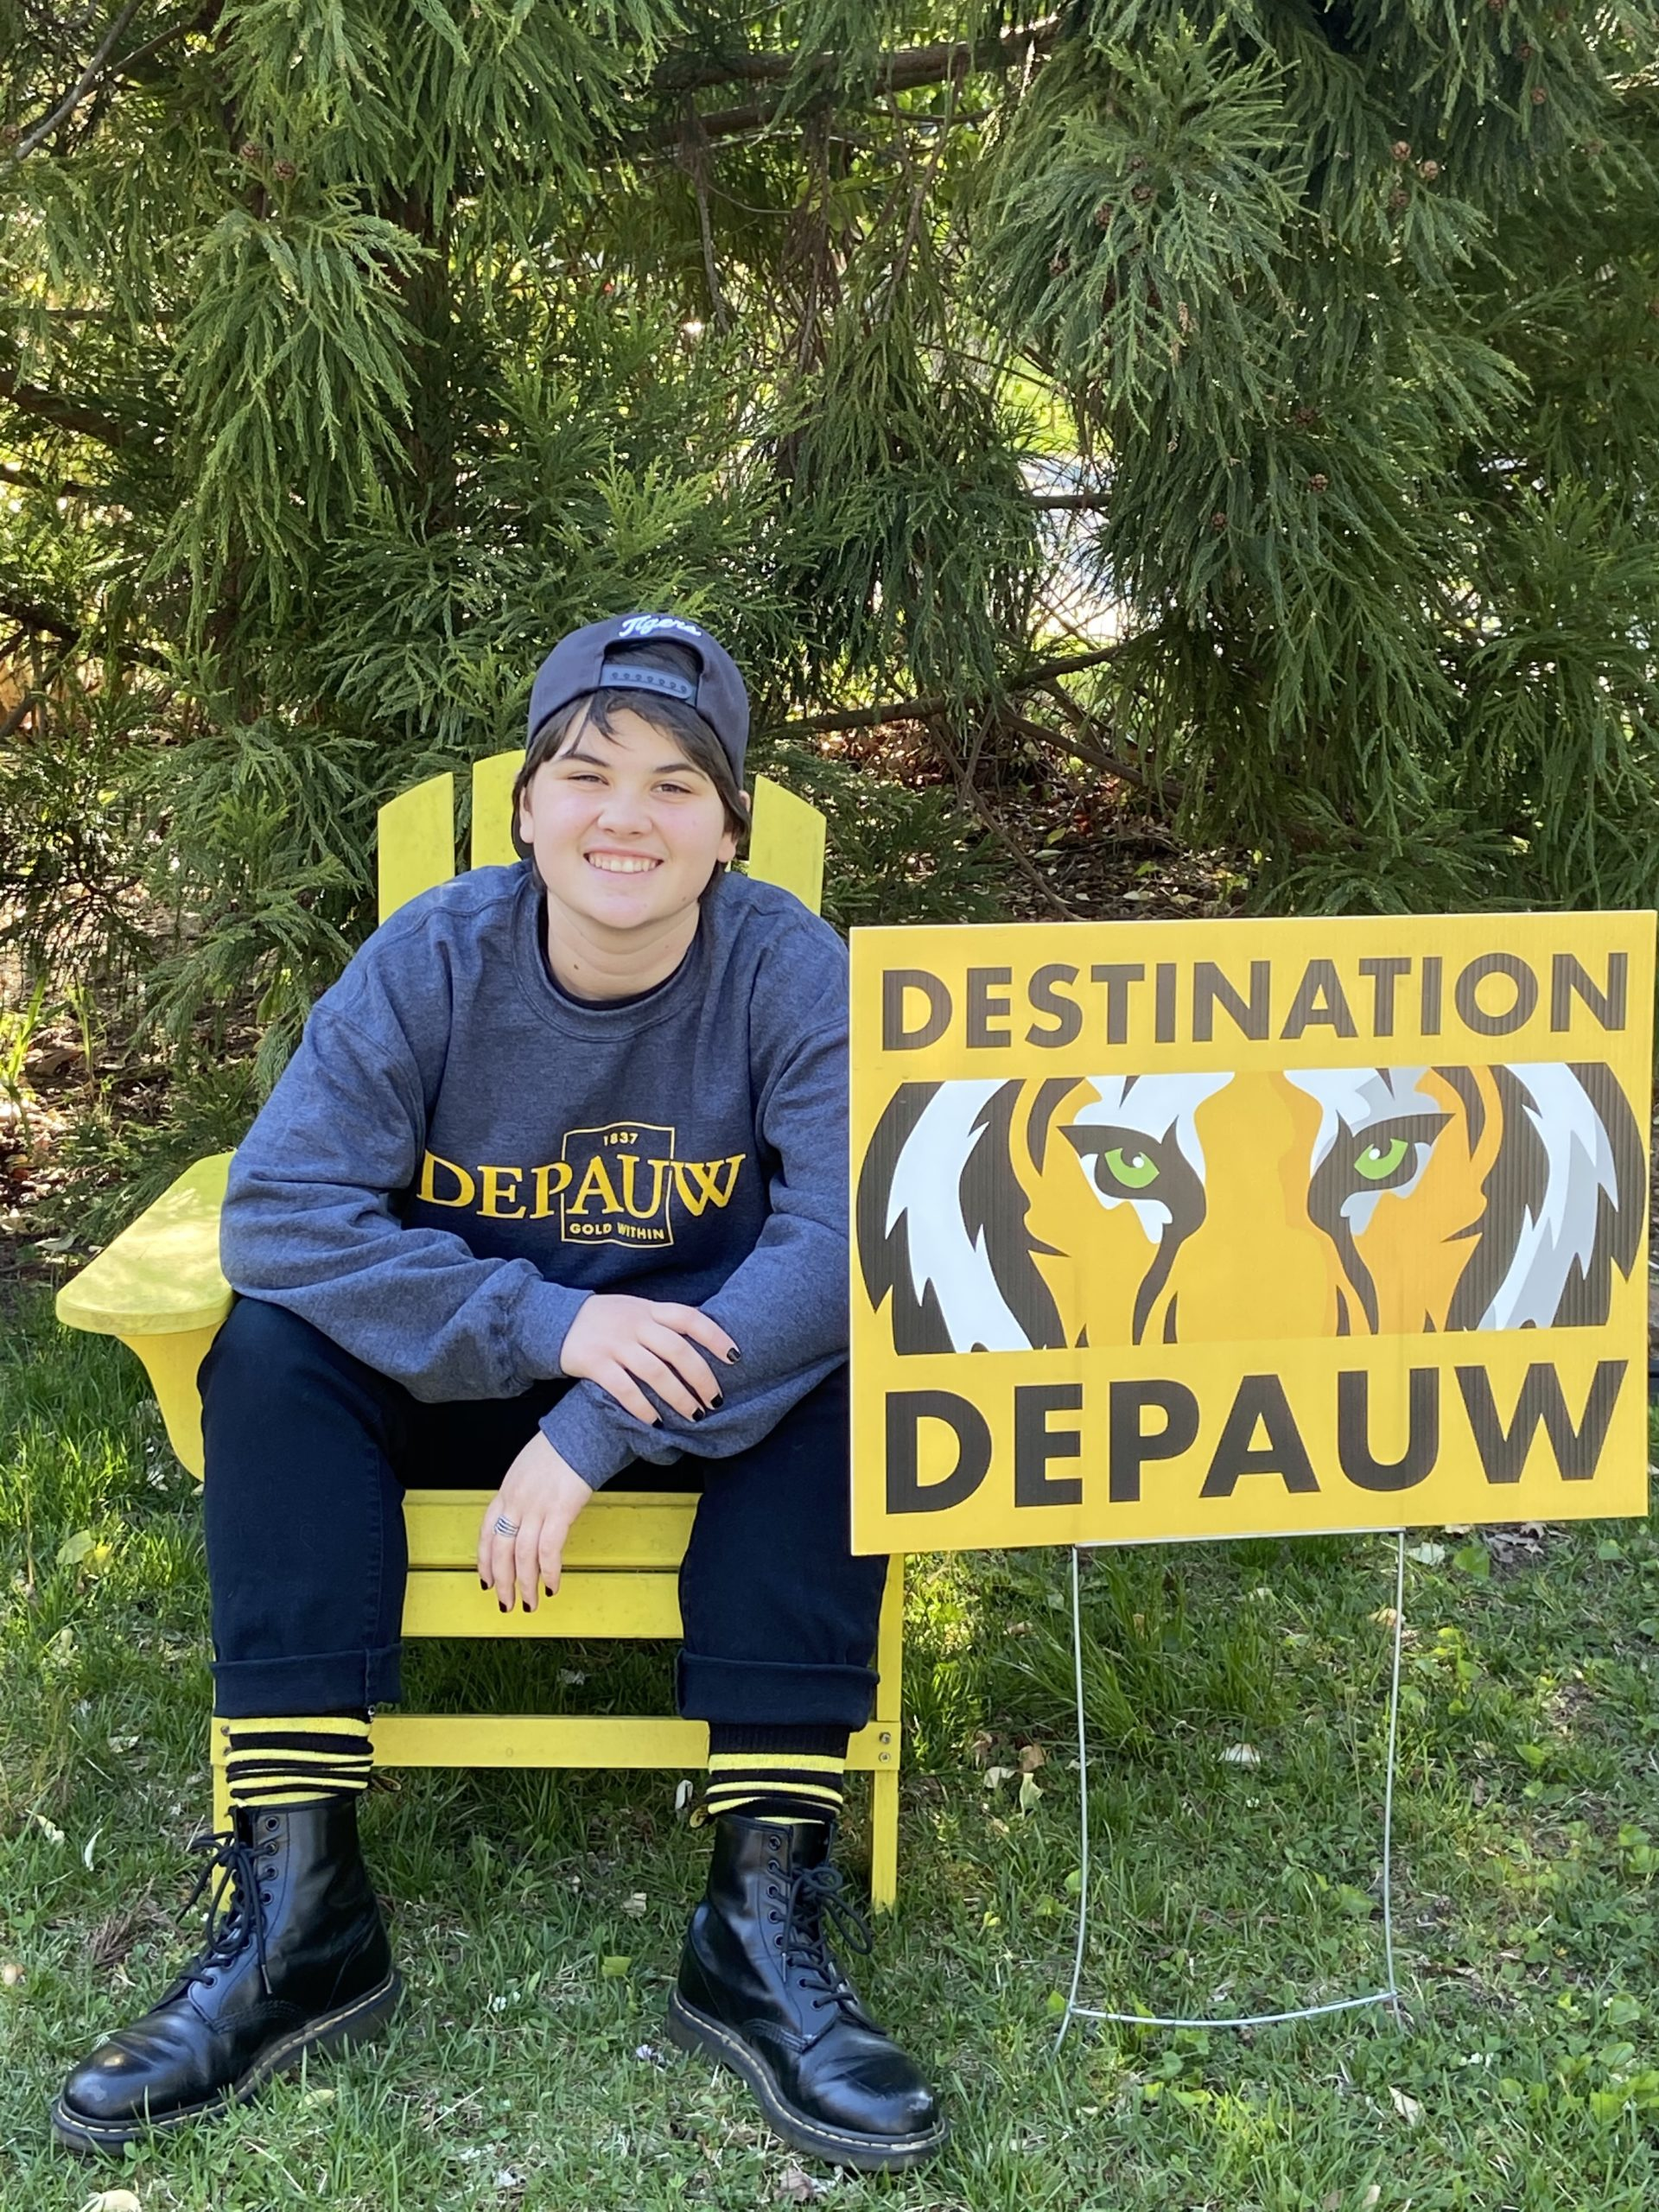 Marissa Kennedy proudly displays a DePauw yard sign.